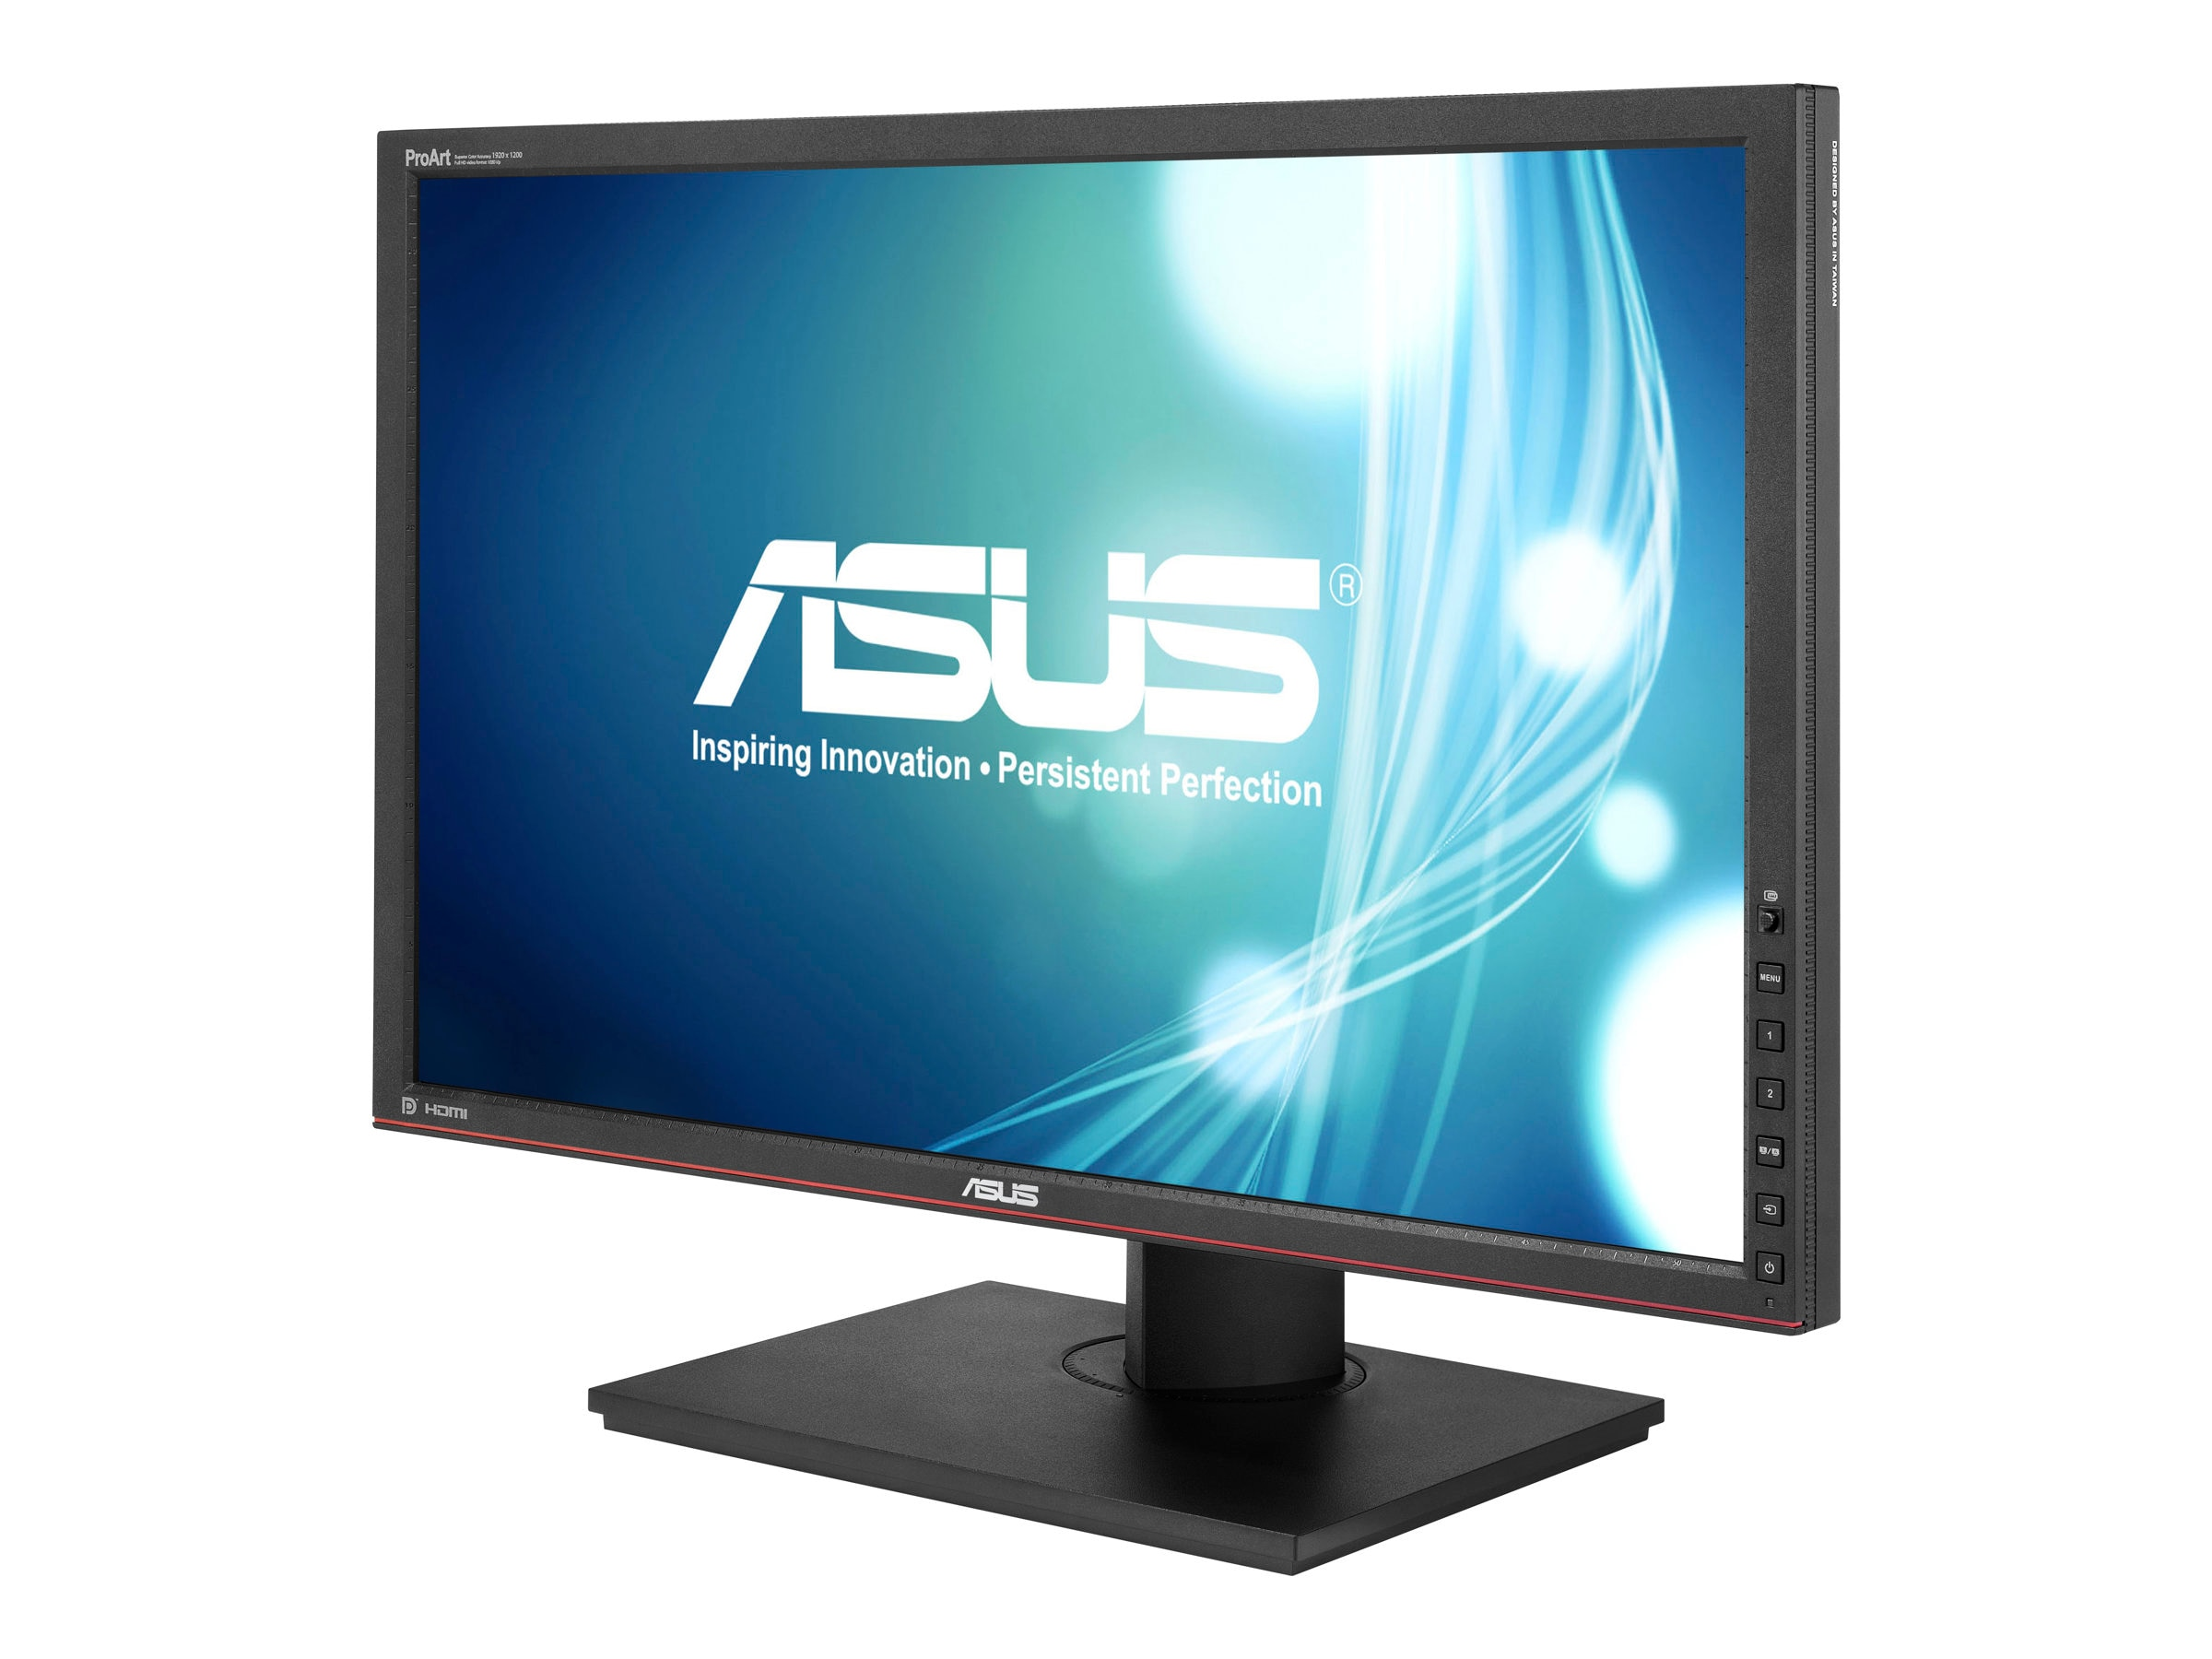 Asus 24 PA248Q Widescreen LED-LCD Monitor, Black, PA248Q